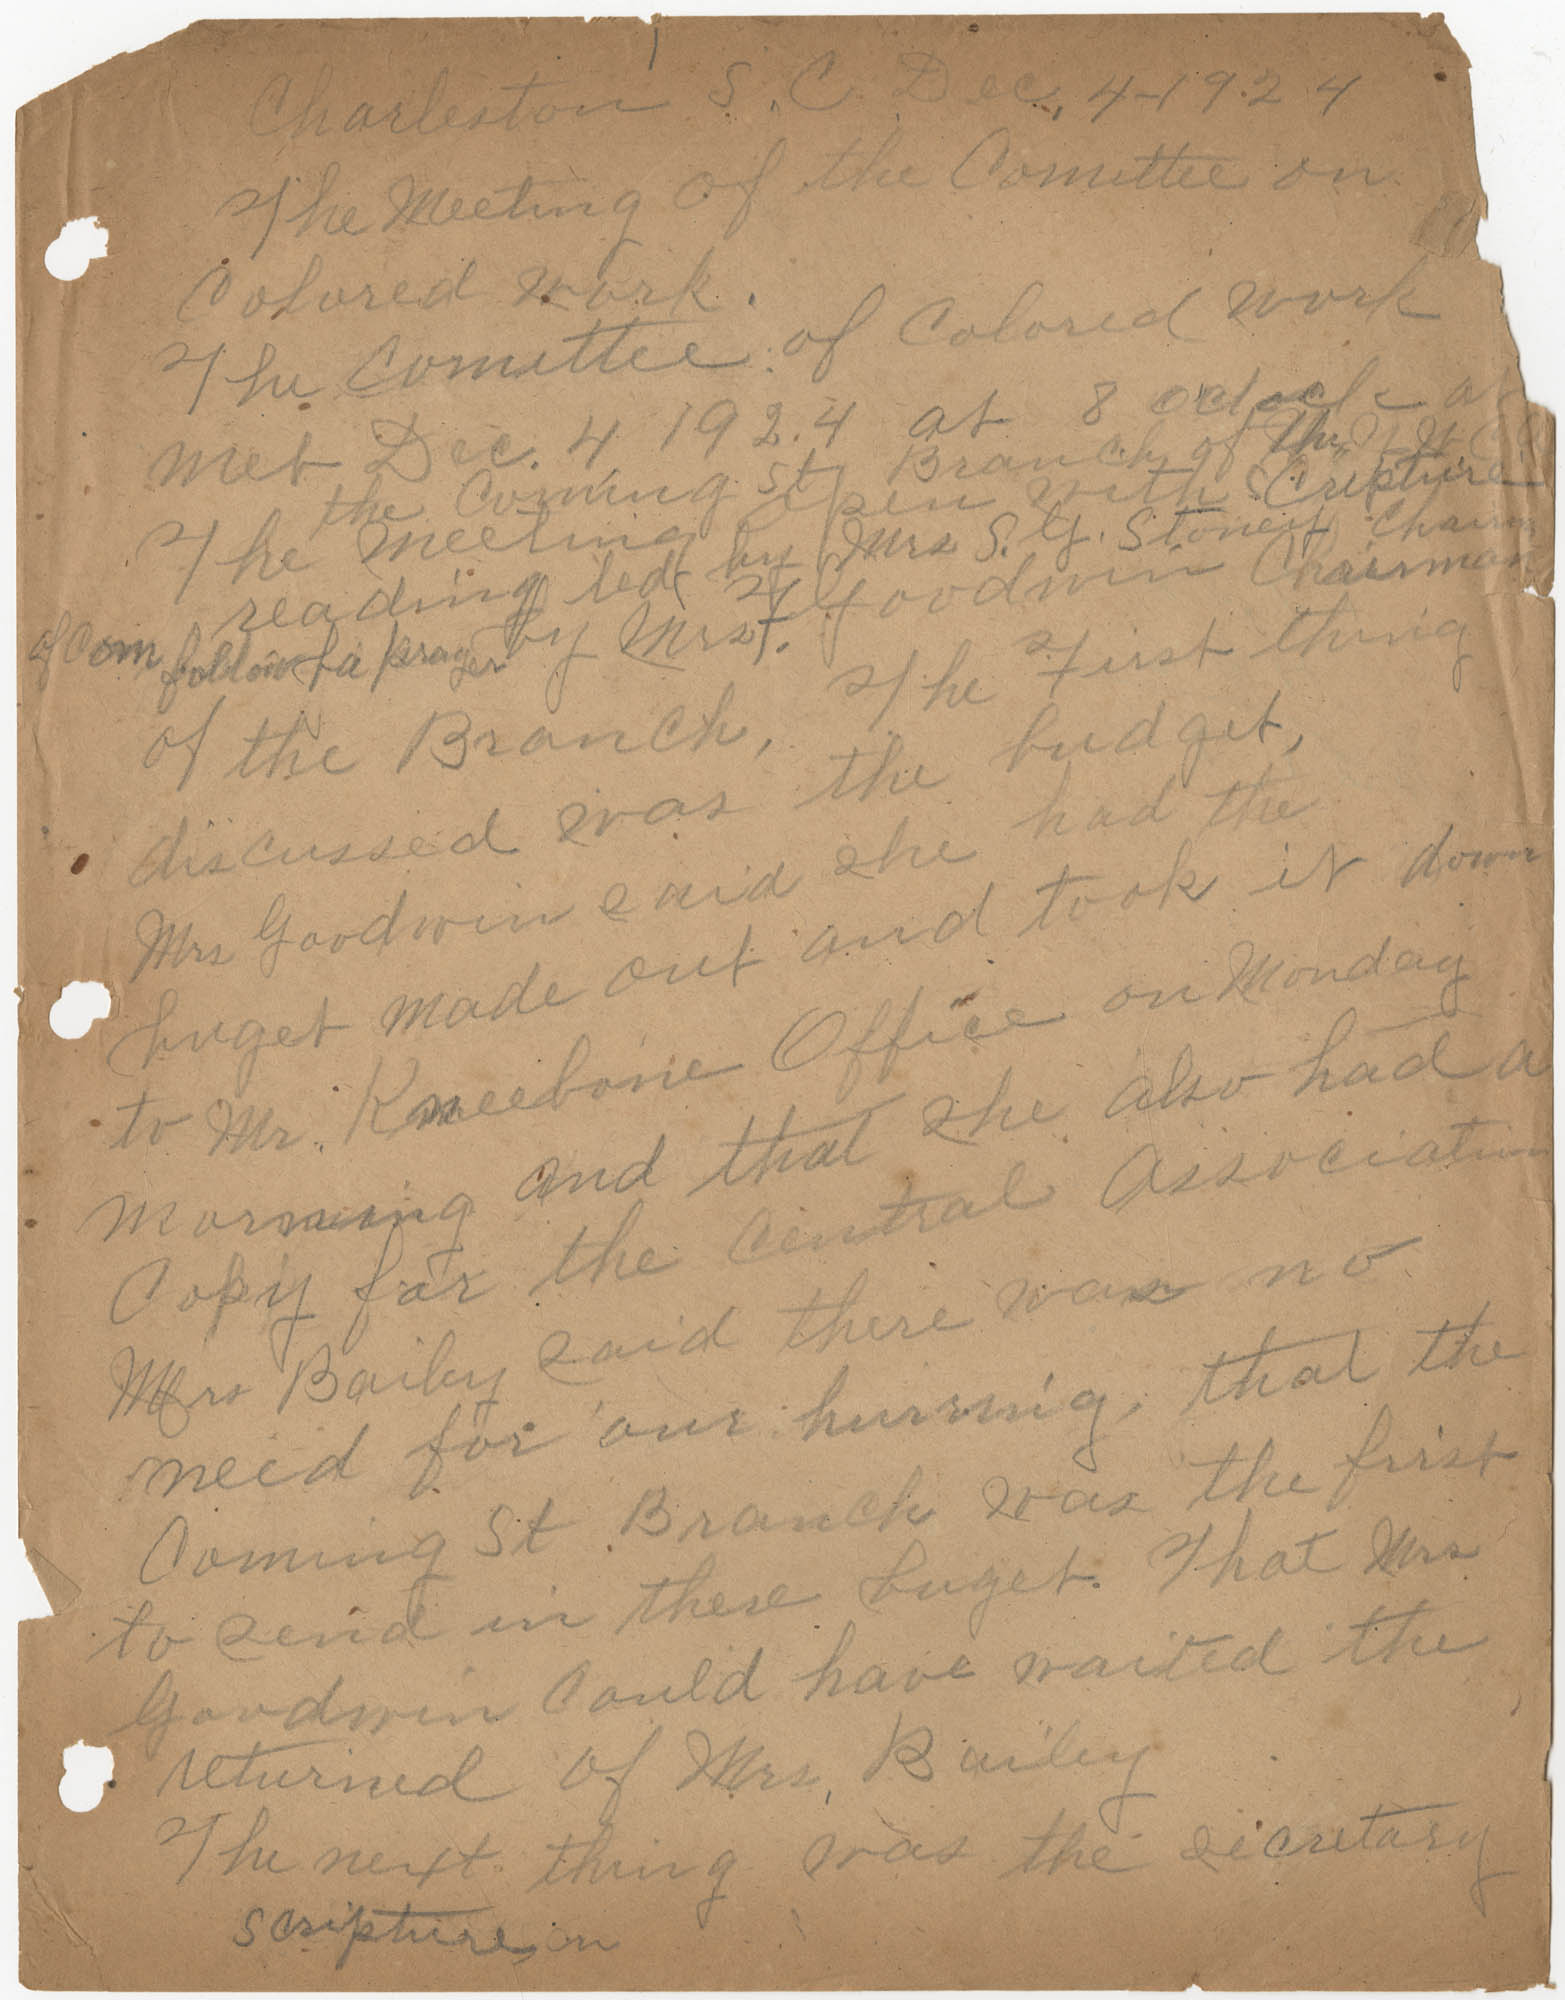 Minutes, Coming Street Y.W.C.A., December 4, 1924